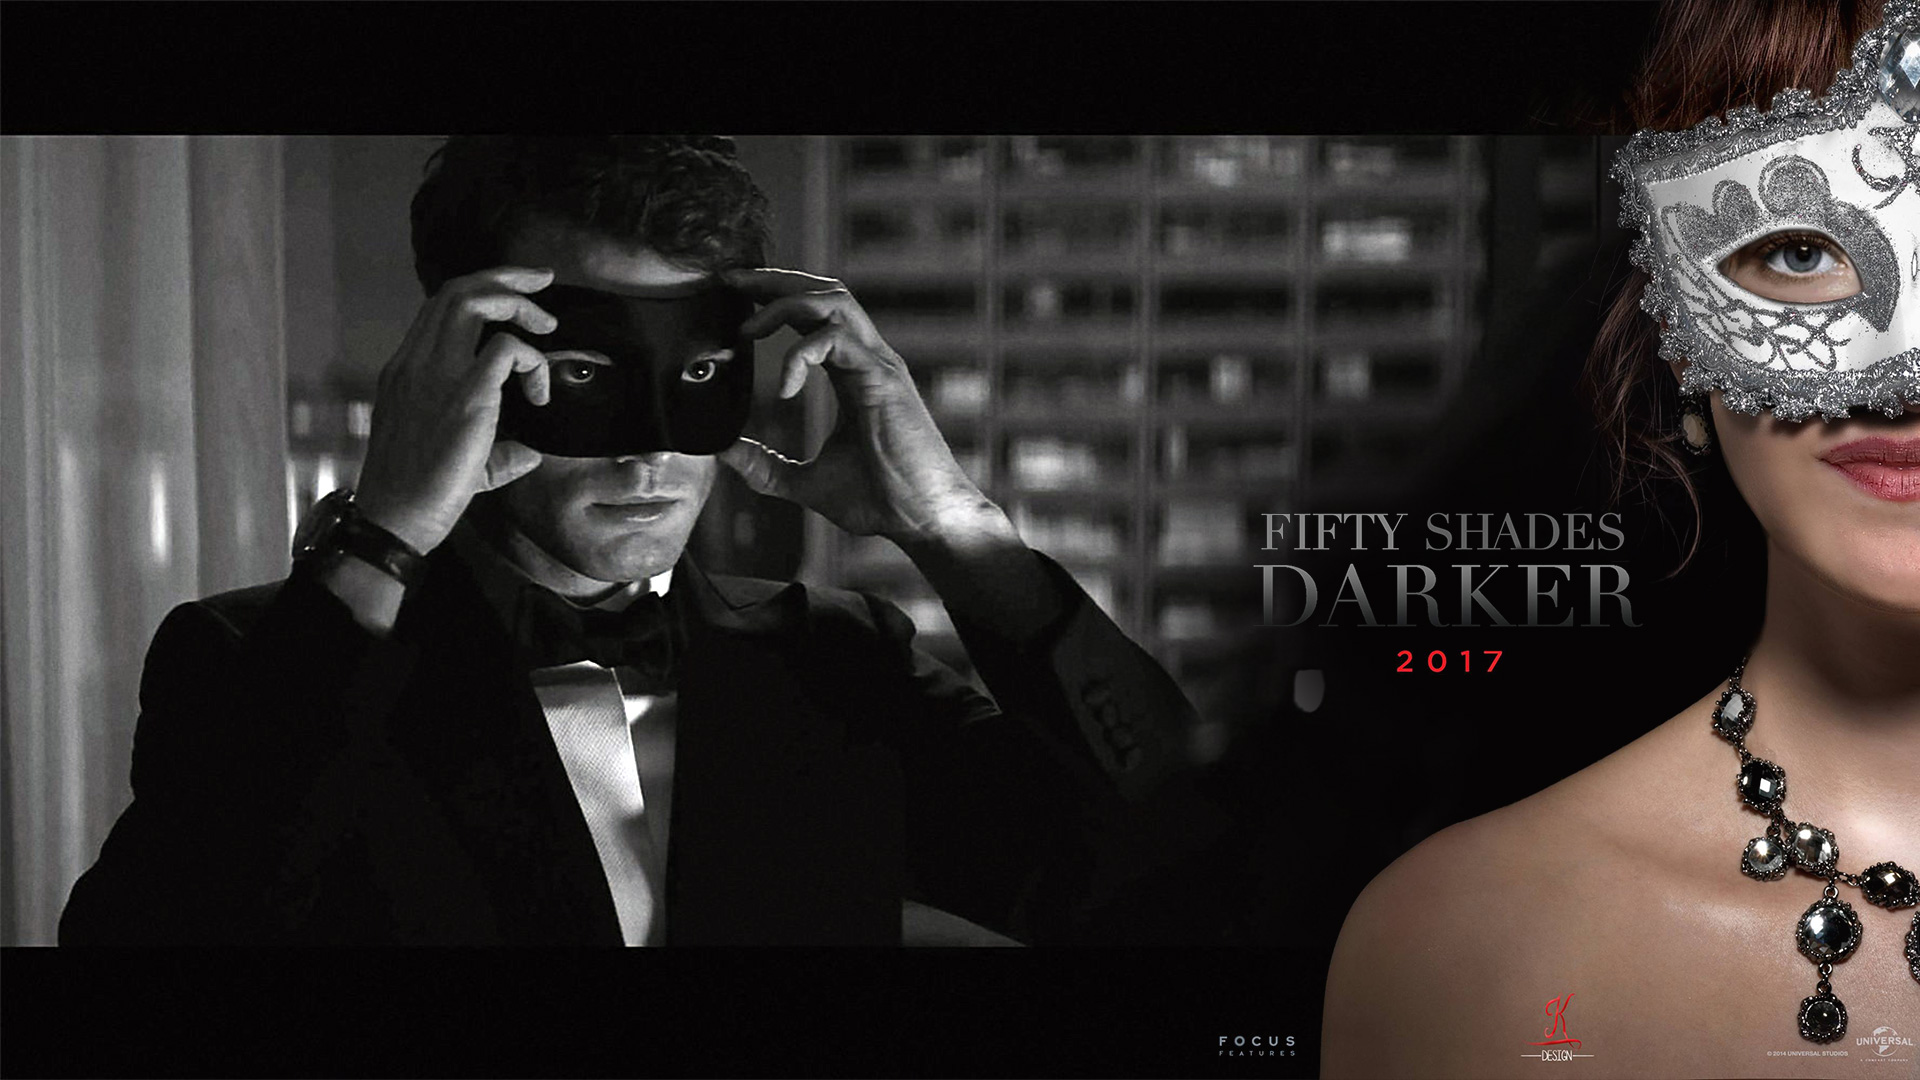 Fifty Shades Darker wallpaper 2